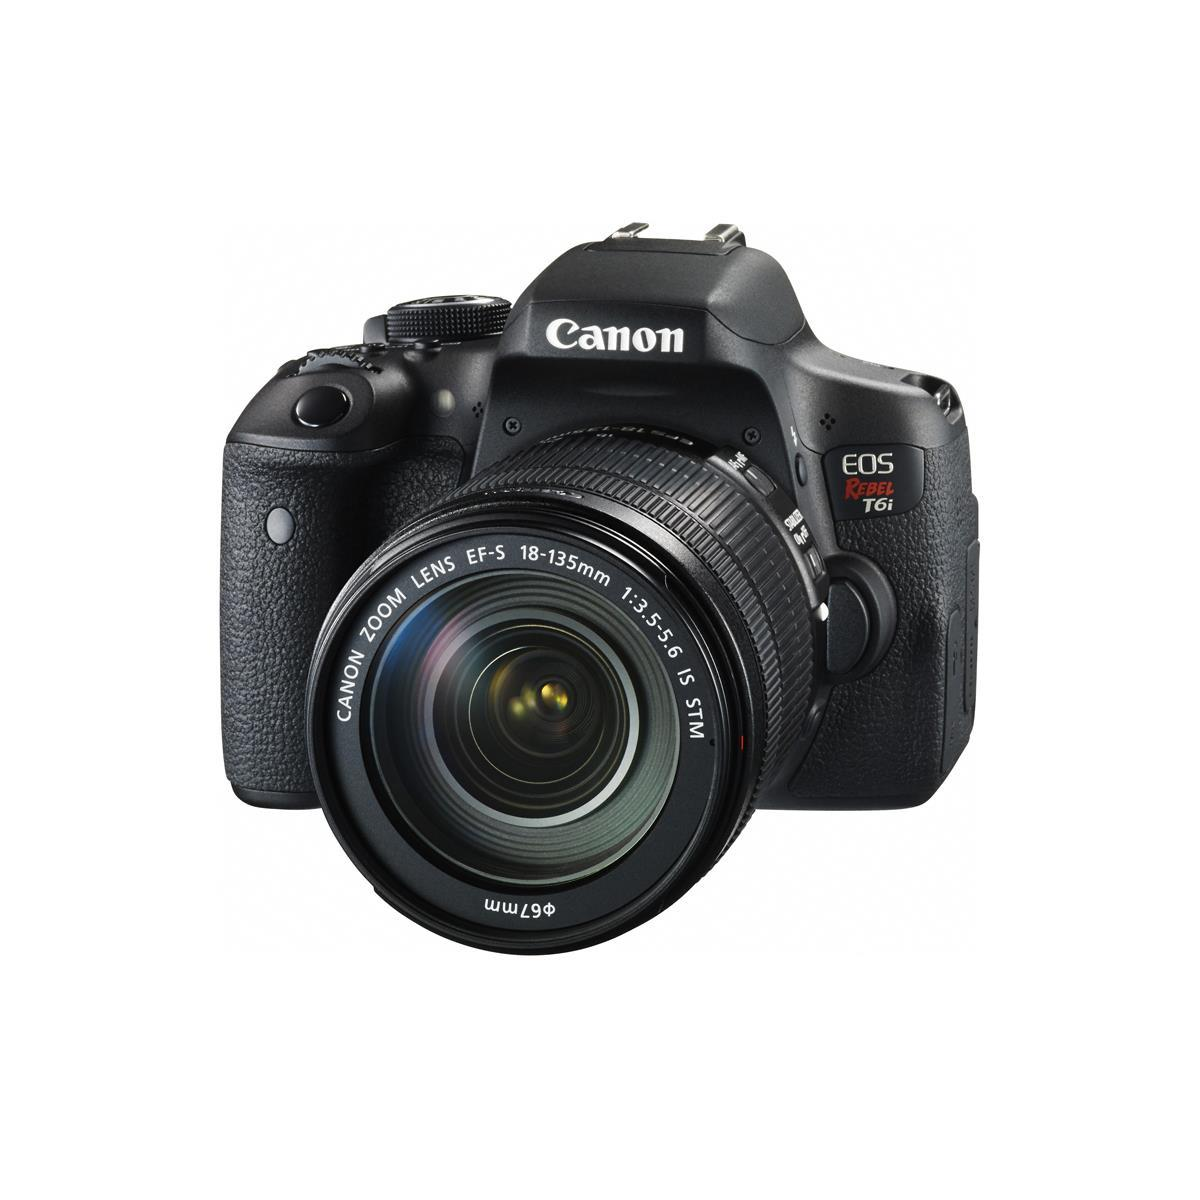 Canon EOS Rebel T6i DSLR Camera with EF-S 18-135mm f/3.5-5.6 IS STM Lens